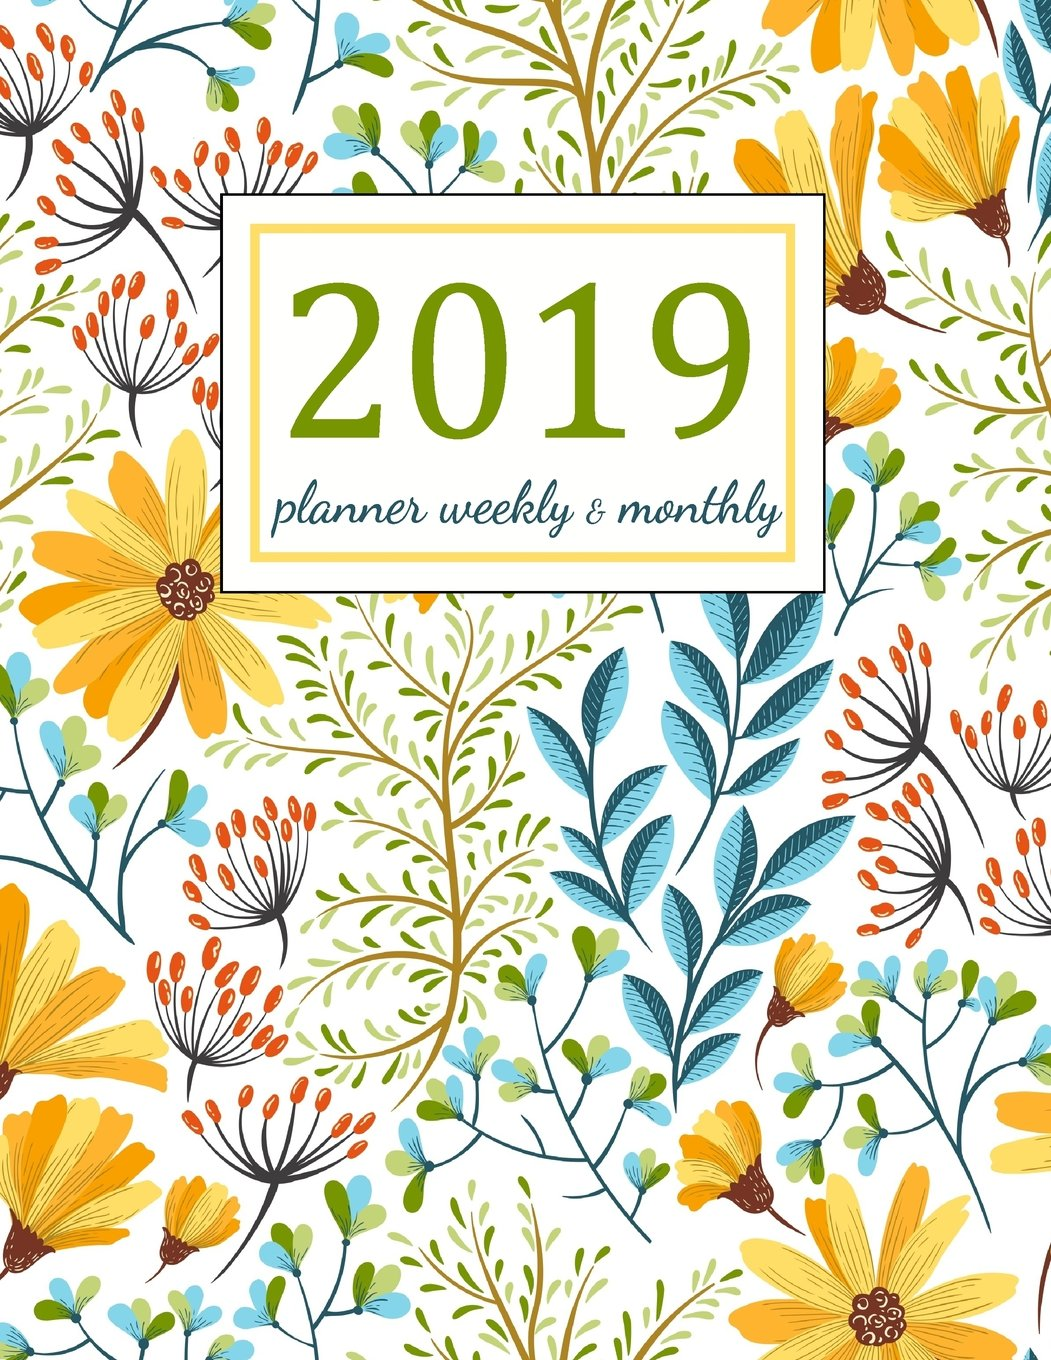 2019 Planner Weekly and Monthly : Floral Cover: A Year - 365 Daily - 52 Week journal Planner Calendar Schedule Organizer Appointment Notebook, Monthly ... Setting Happiness Gratitude Book (Volume 1)